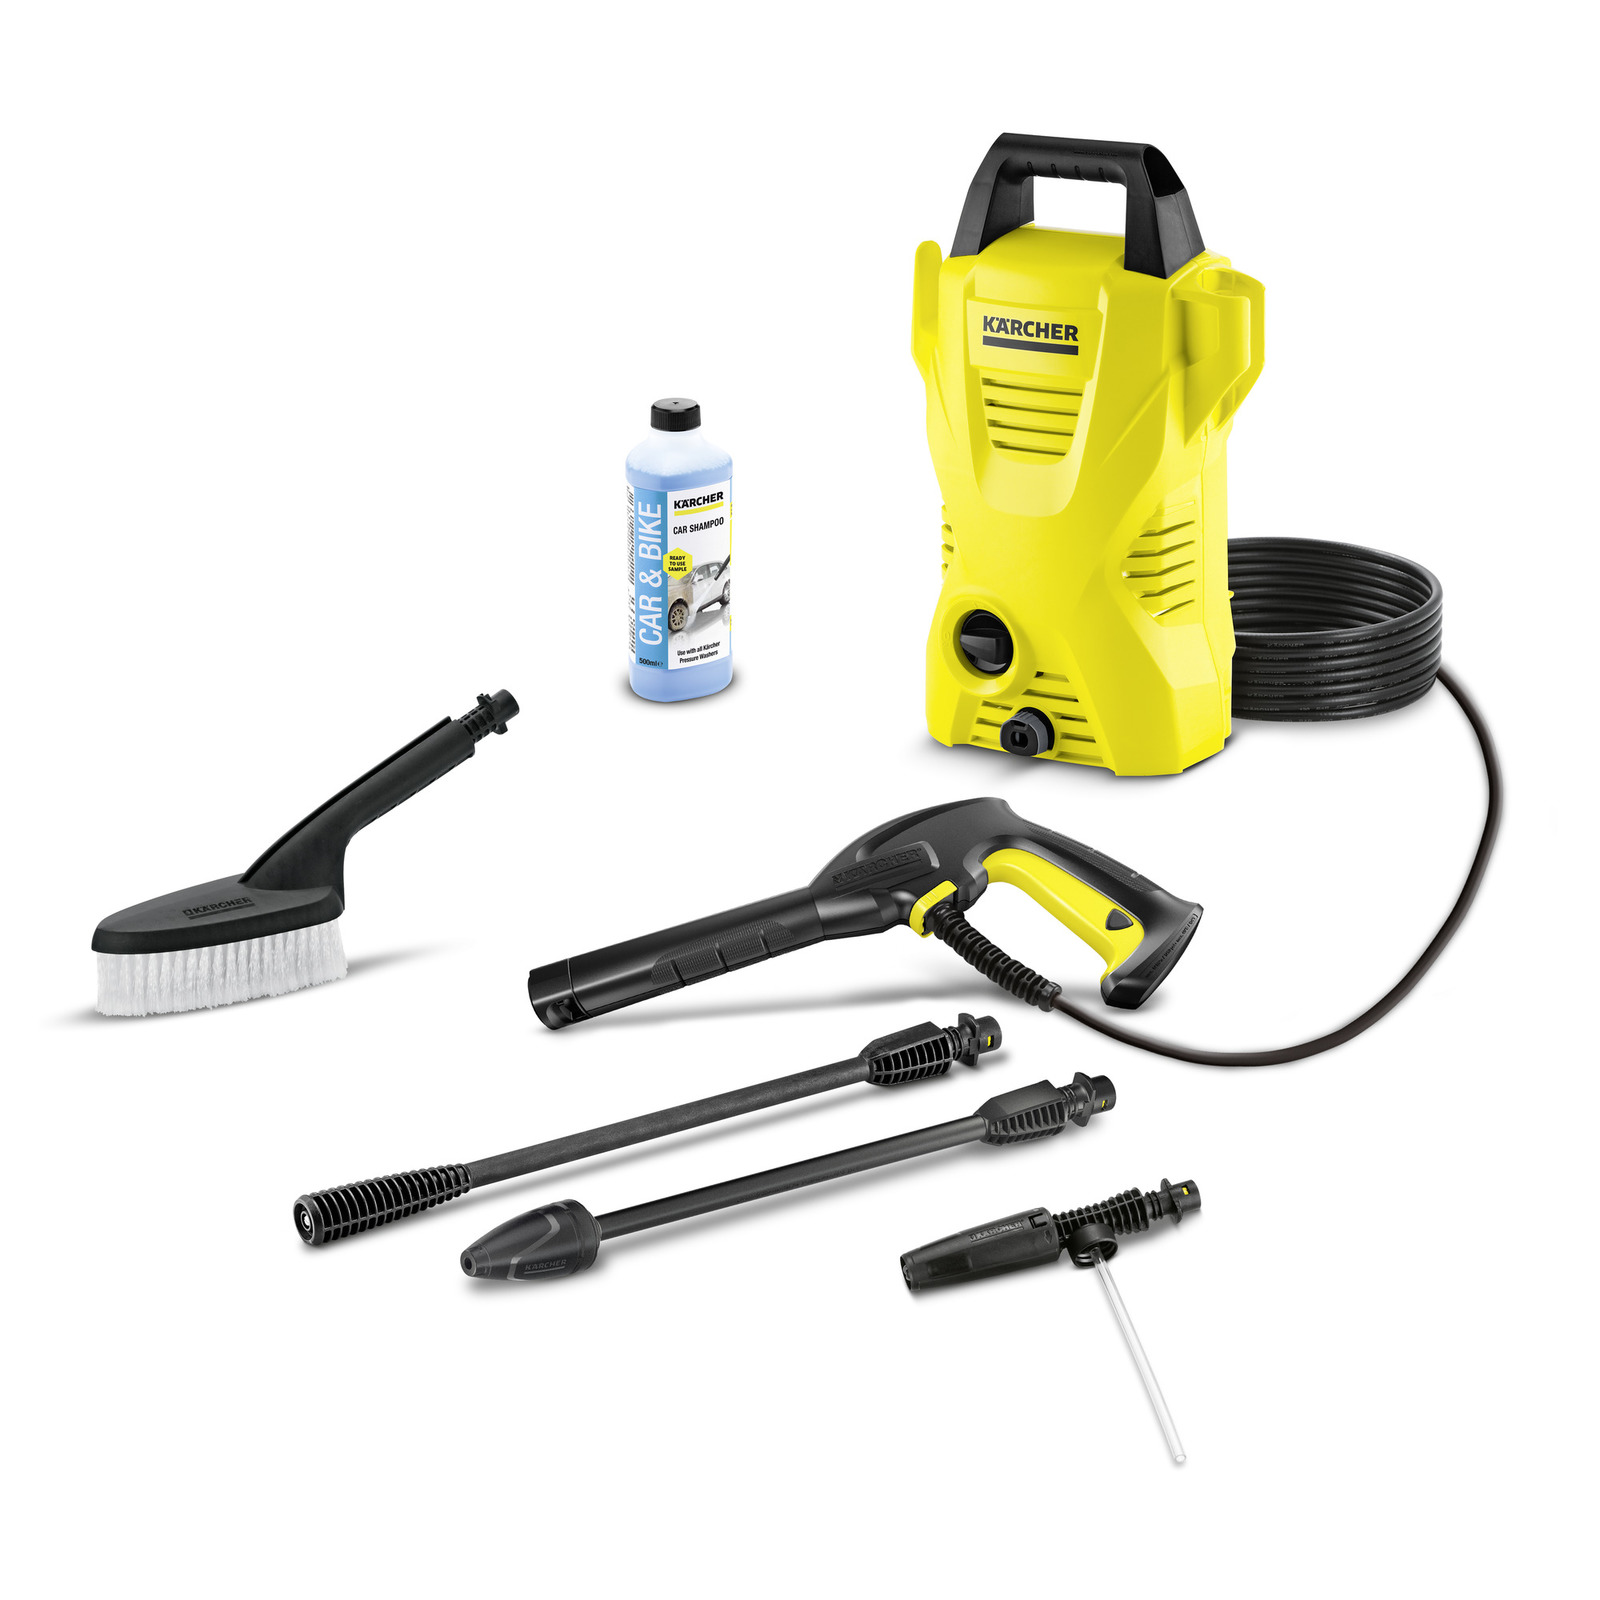 Lot 30343 - V Brand New Karcher K2 Compact Car High Pressure Cleaner With Wash Brush - Foam Nozzle & Car Shampoo